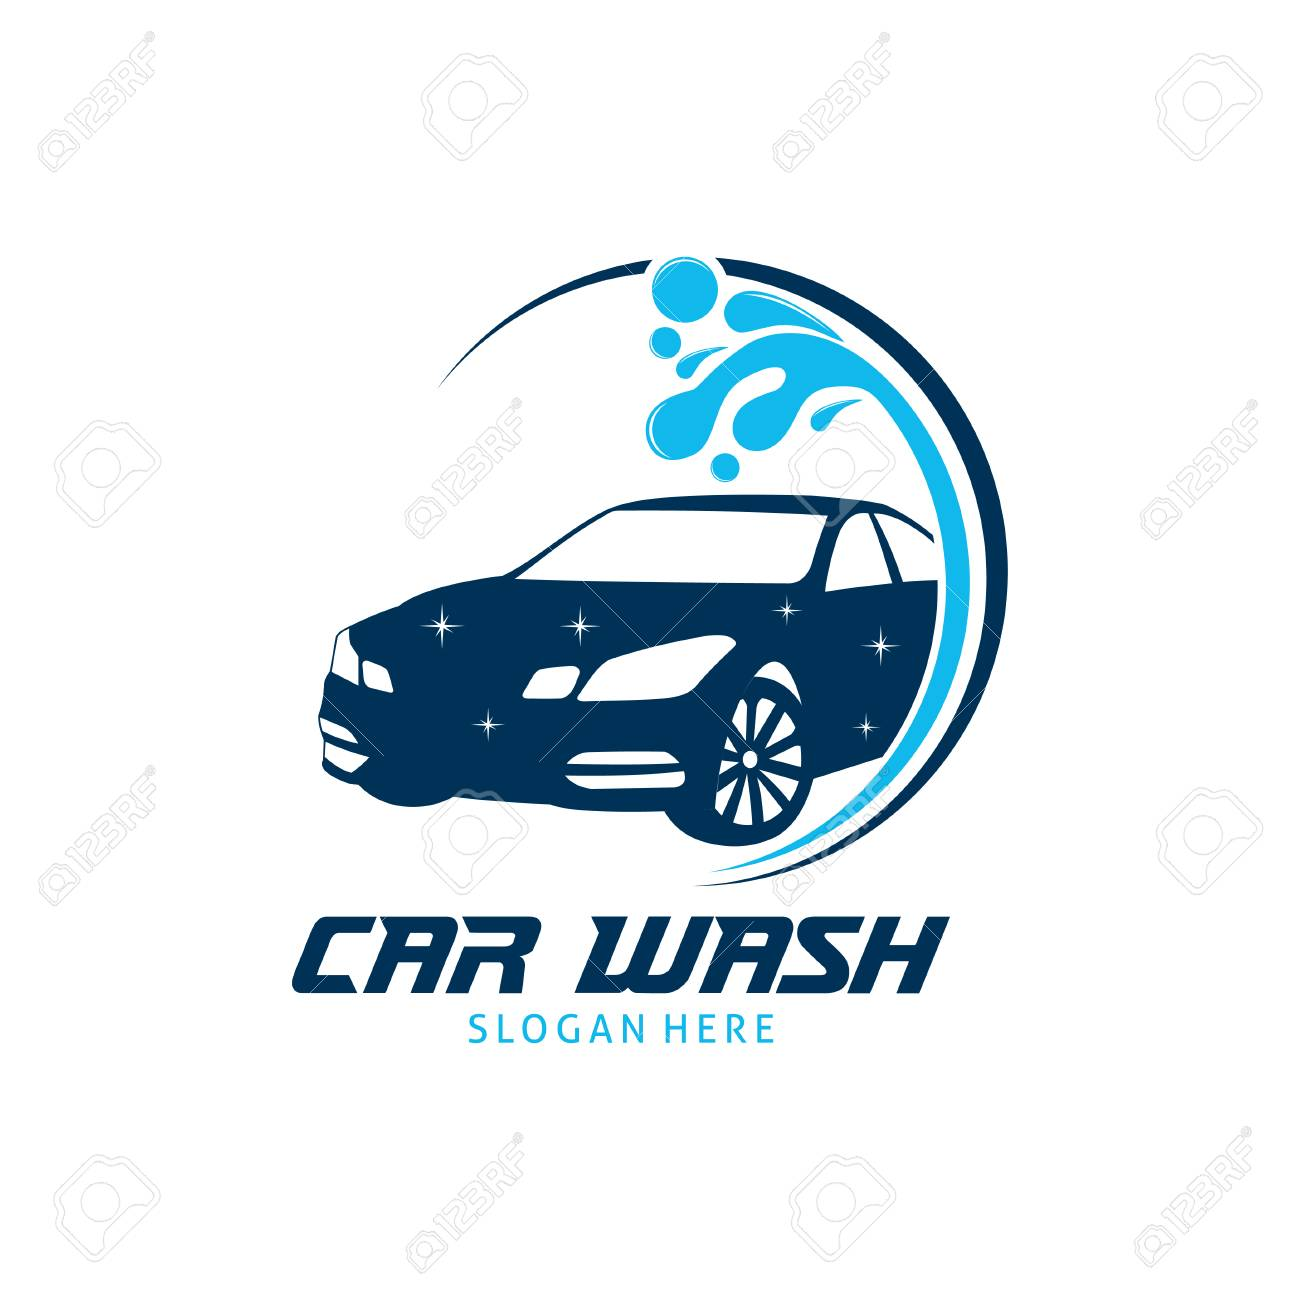 Car Wash Service Vector Logo Design Template Inspiration Or